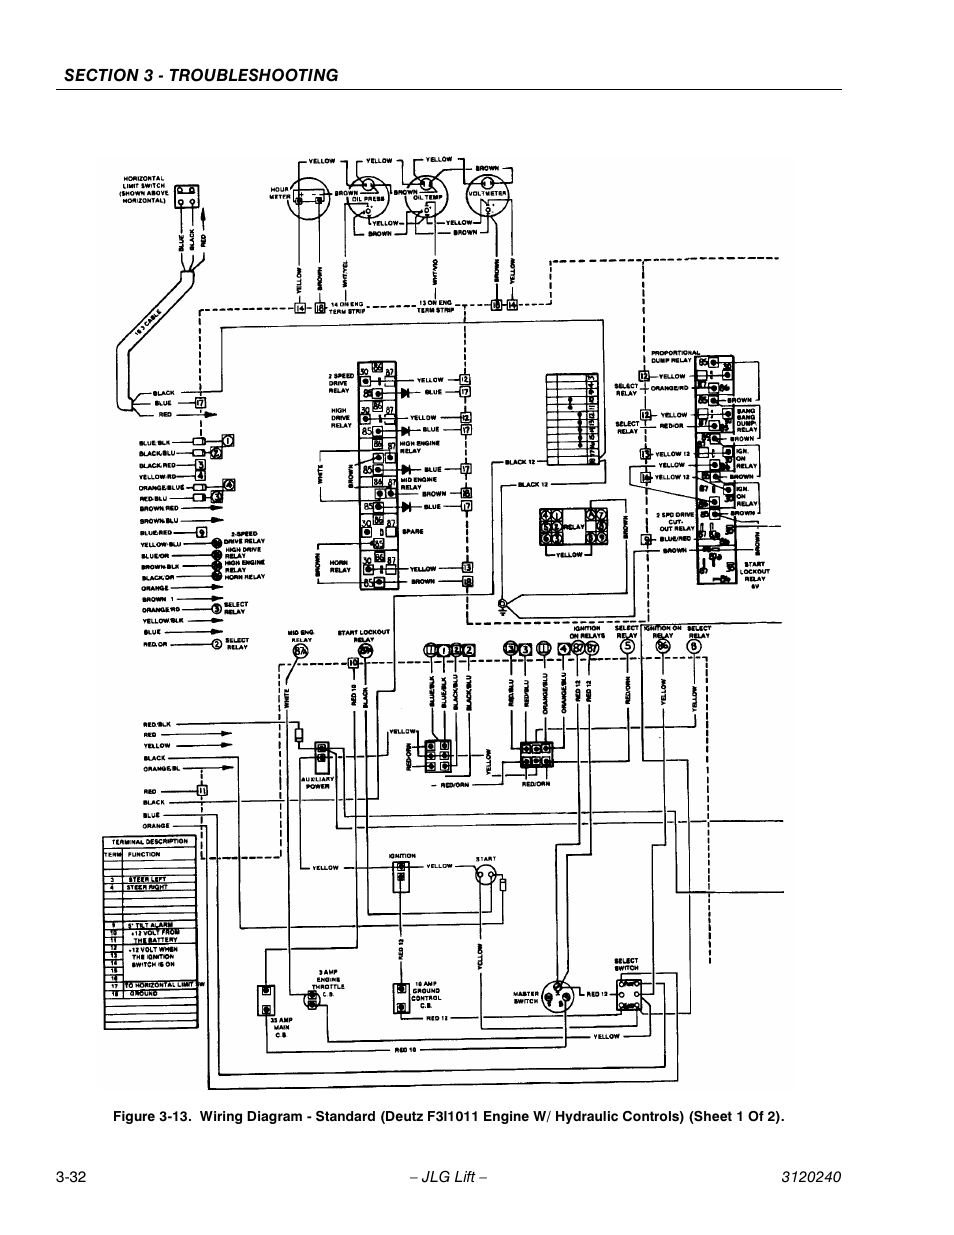 jlg 40h service manual page144 deutz wiring diagram kenworth wiring diagrams \u2022 free wiring jlg 40h wiring diagram at soozxer.org